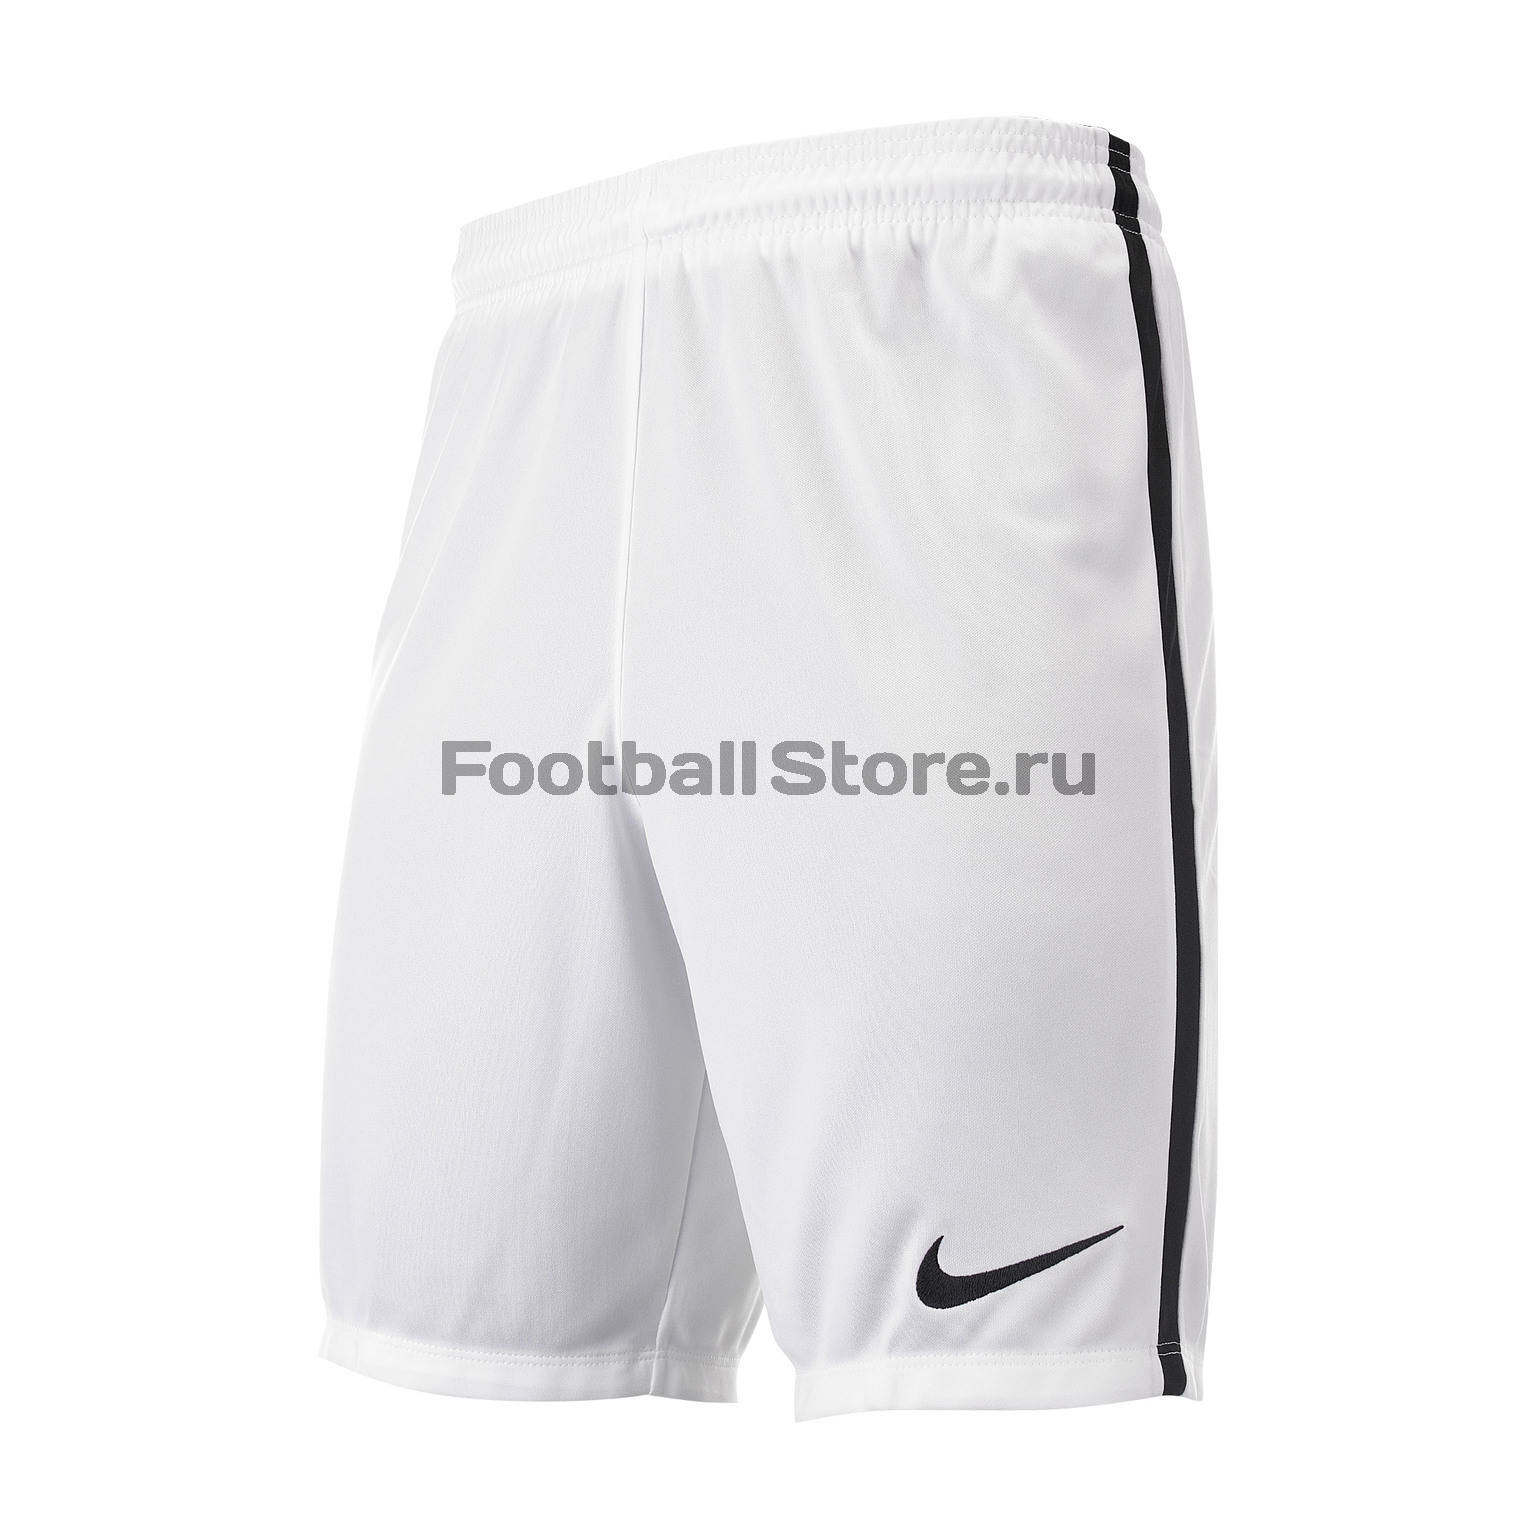 Шорты Nike Игровые шорты Nike League Knit Short NB 725881-100 ergo draudimas